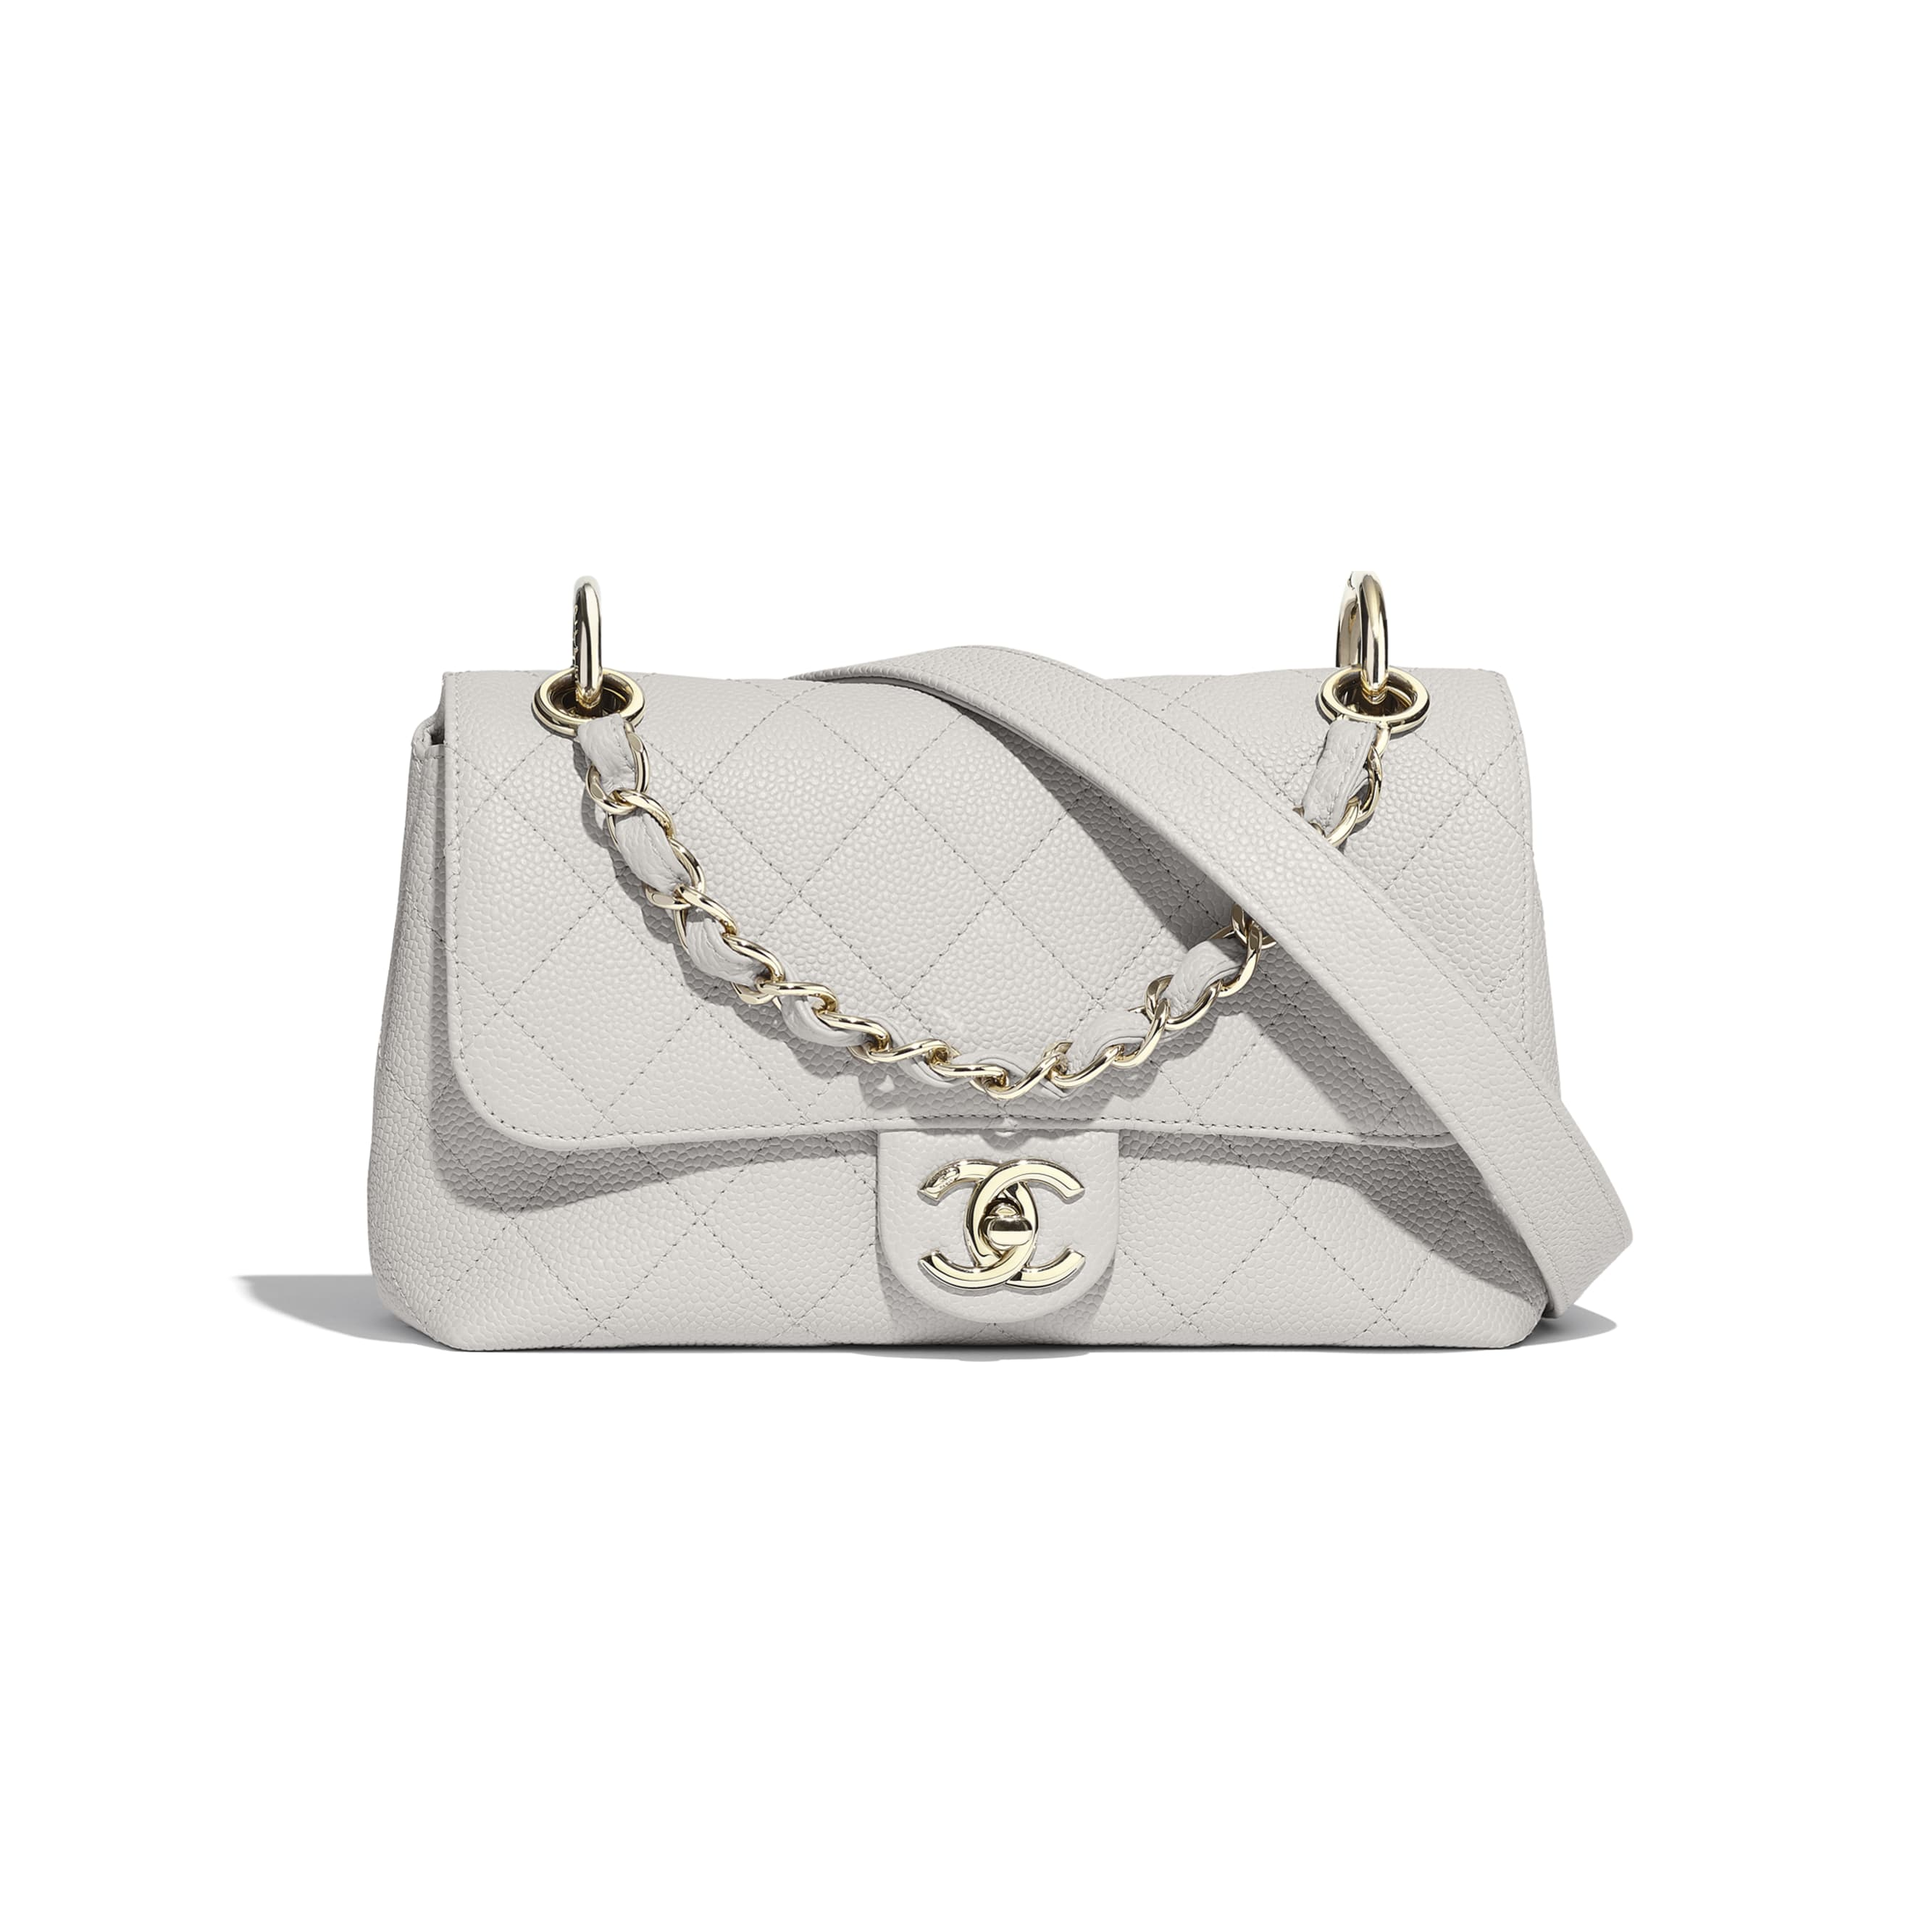 Small Flap Bag - Grey - Grained Calfskin & Gold-Tone Metal - CHANEL - Default view - see standard sized version